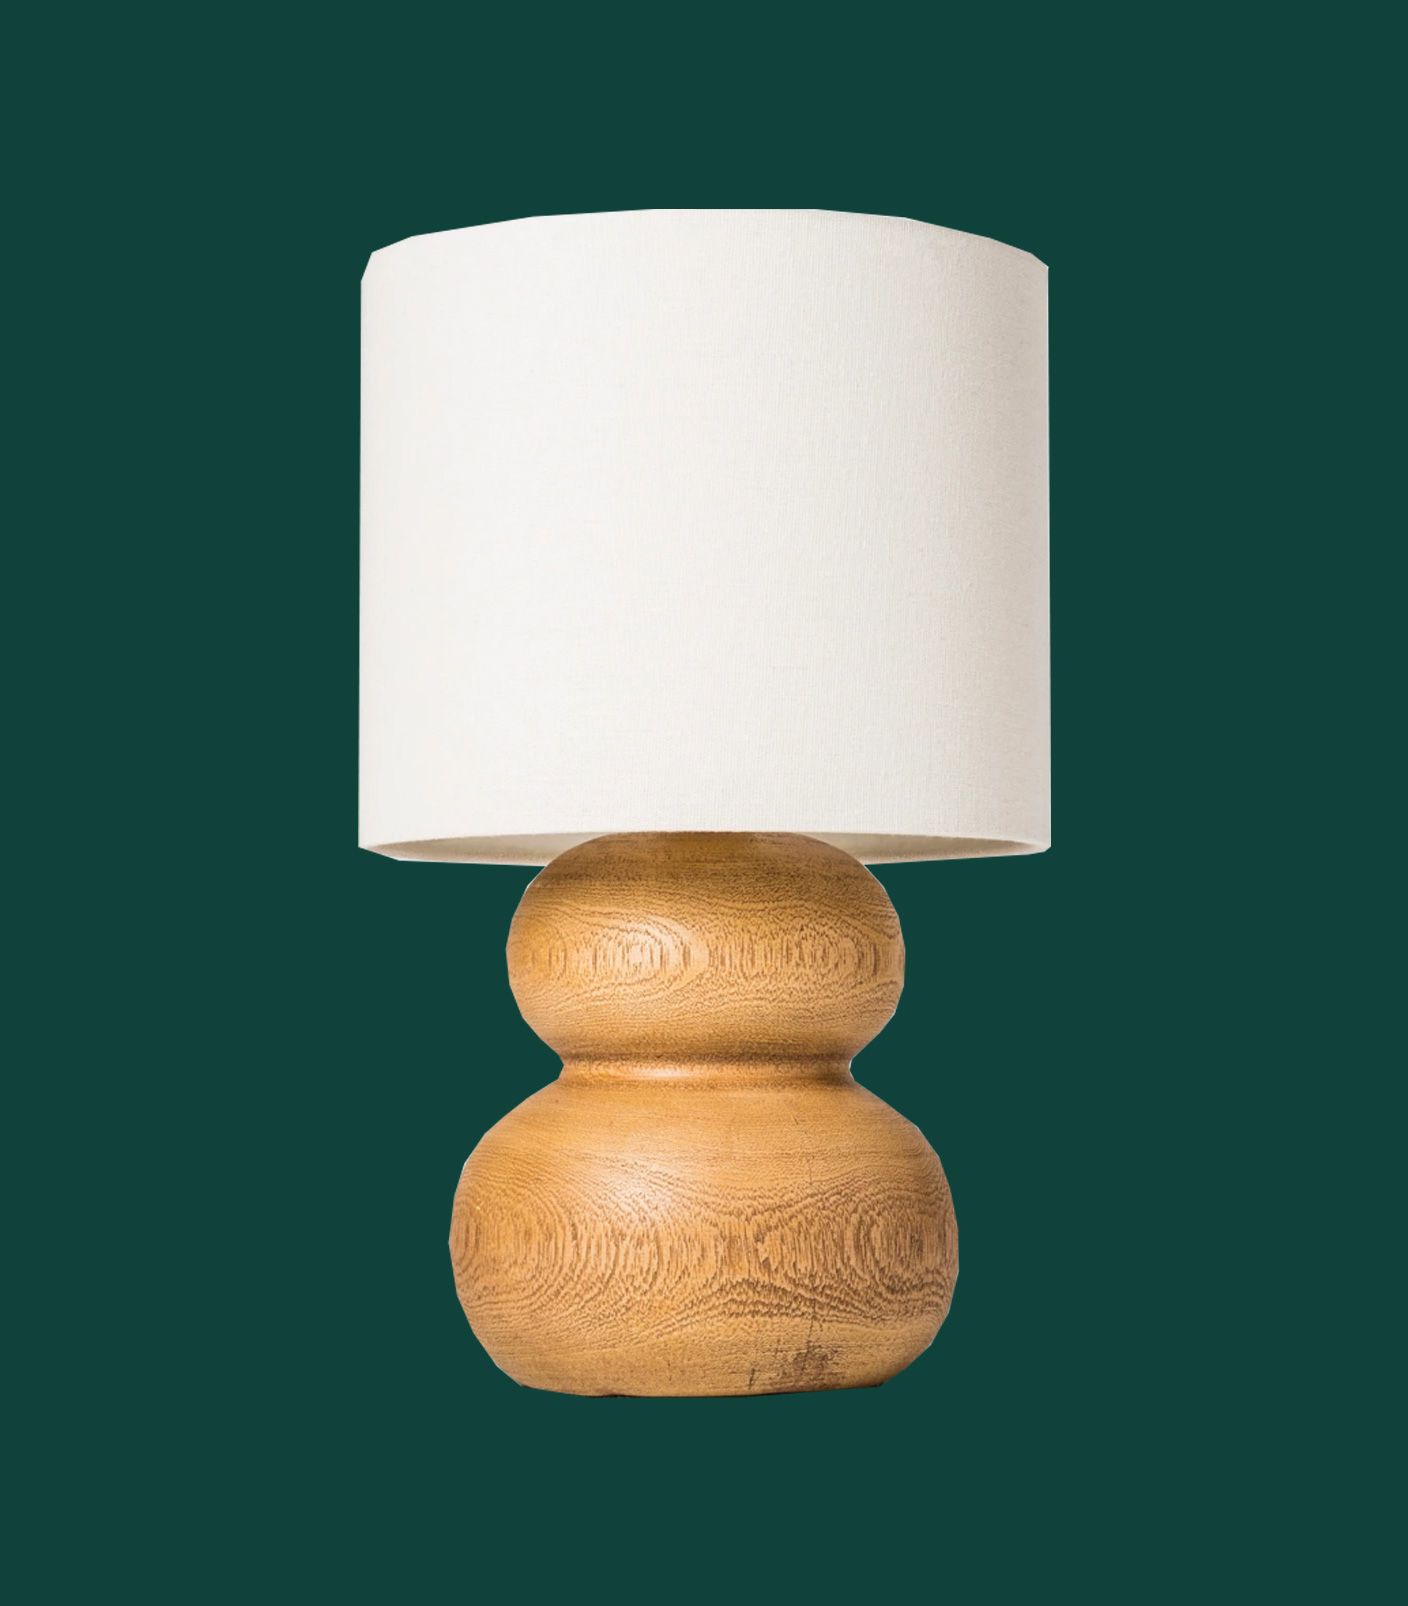 feb-cart-wooden-lamp.jpg